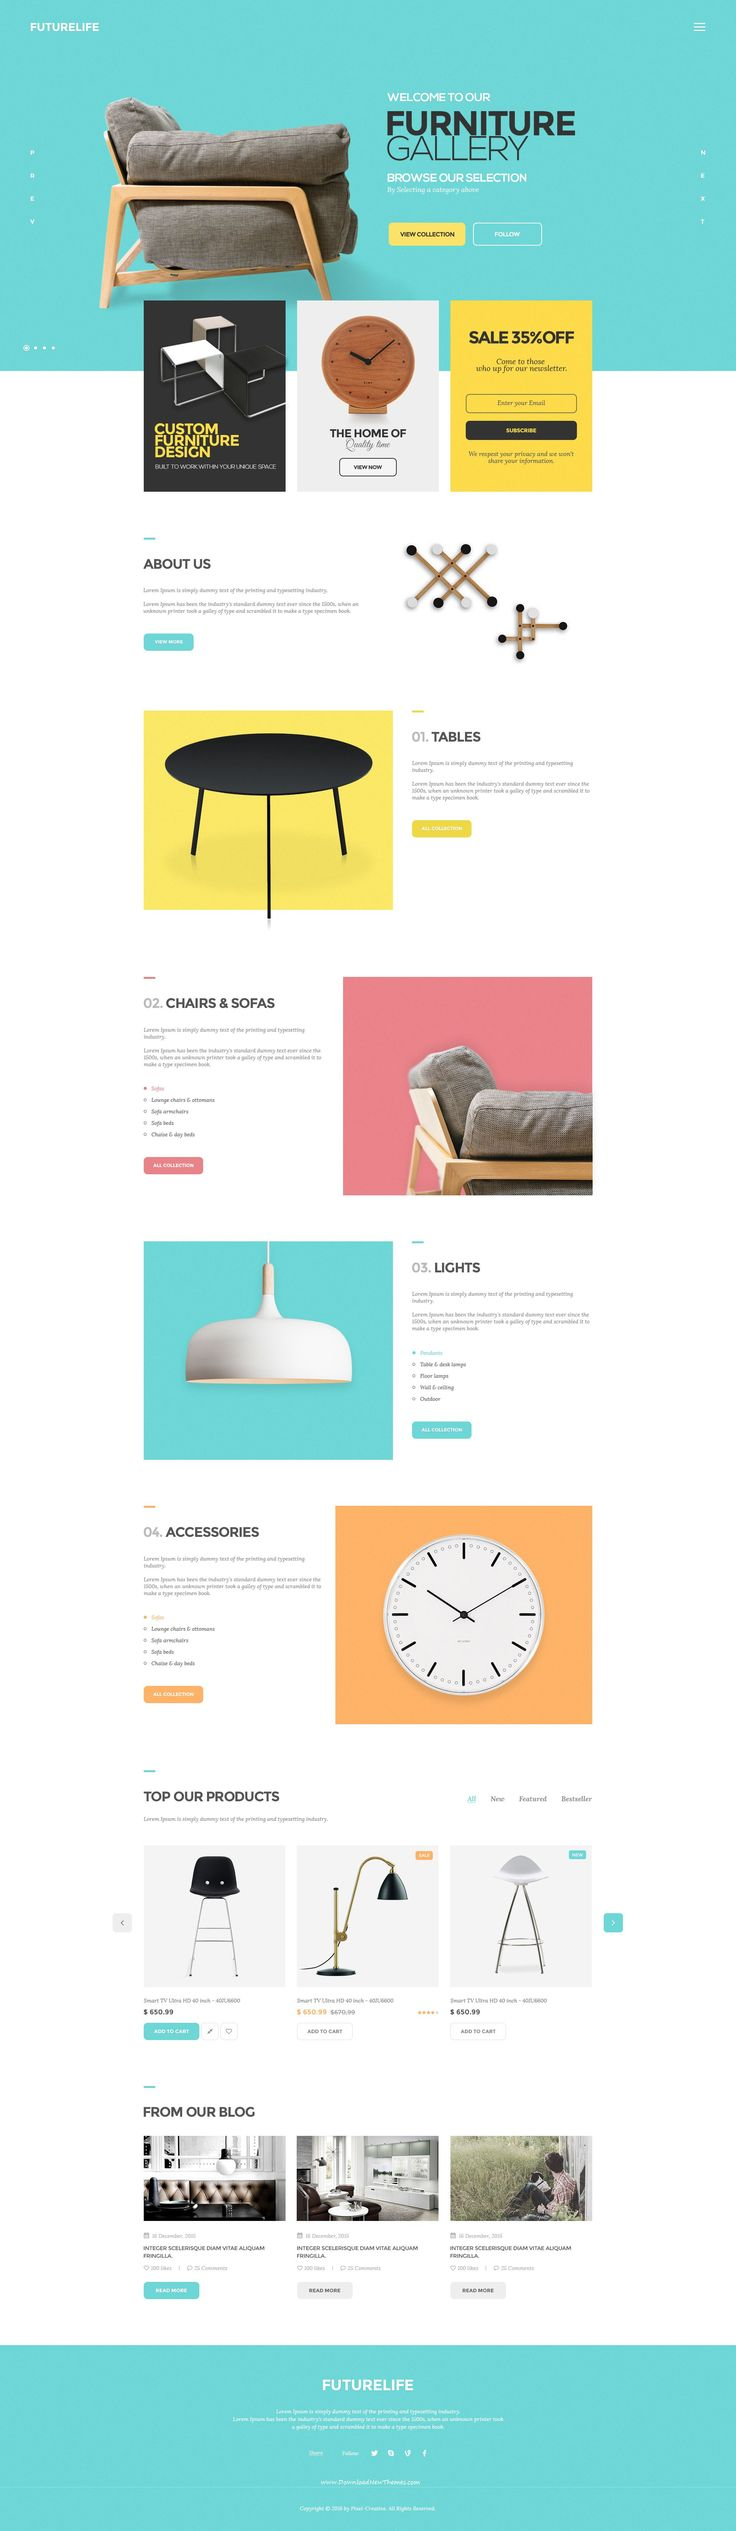 Best 25+ Website template ideas on Pinterest | Business website ...